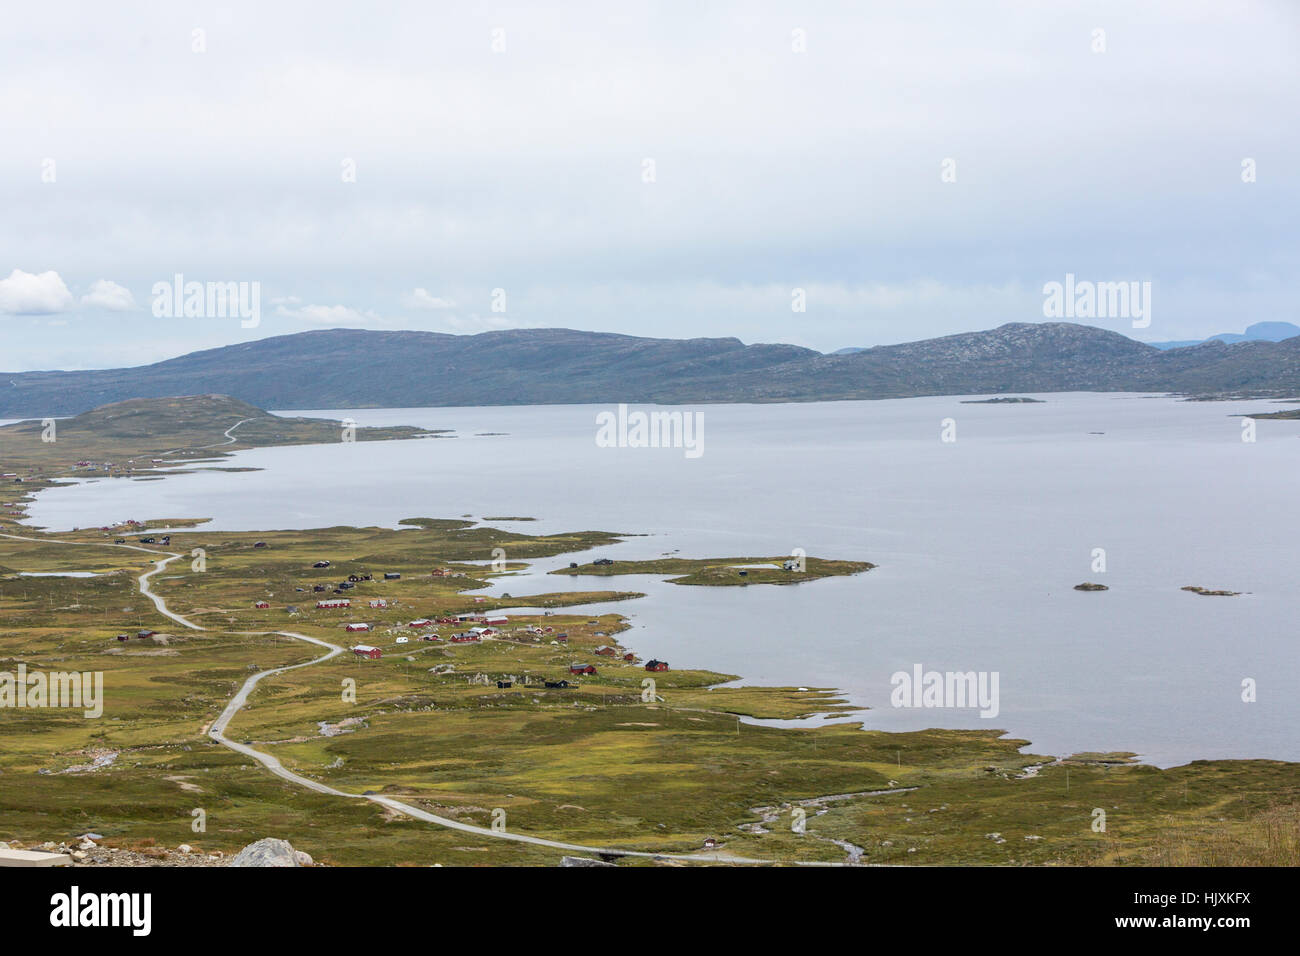 Vinstre lake in the municipality of Vang and Øystre Slidre in Oppland county, Norway. - Stock Image